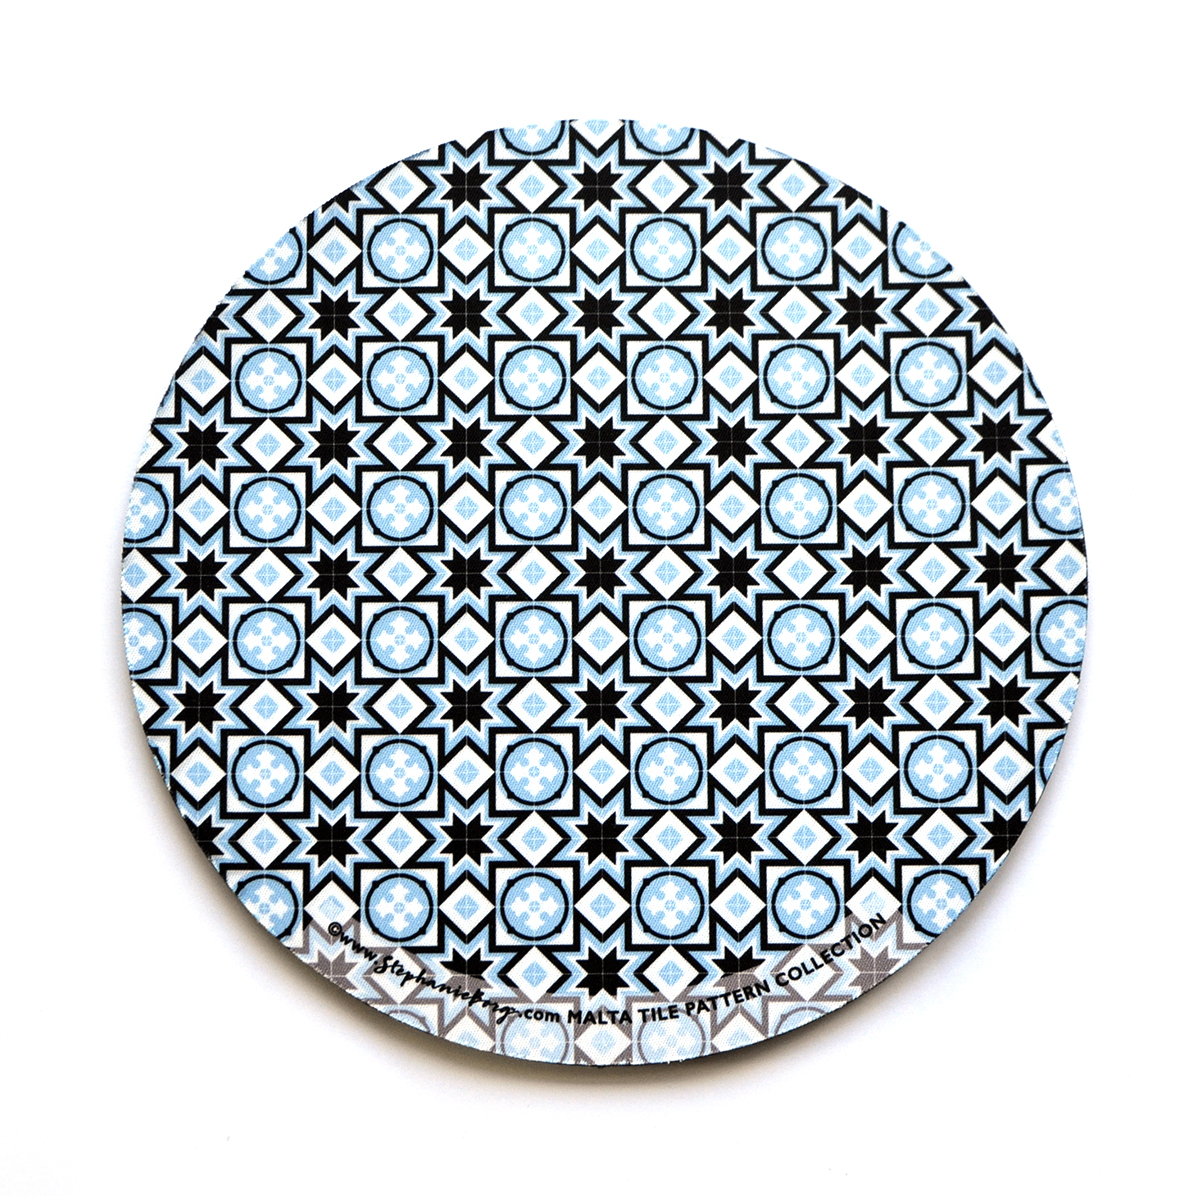 Mousepad with Maltese Tile Patterns, pattern no.7